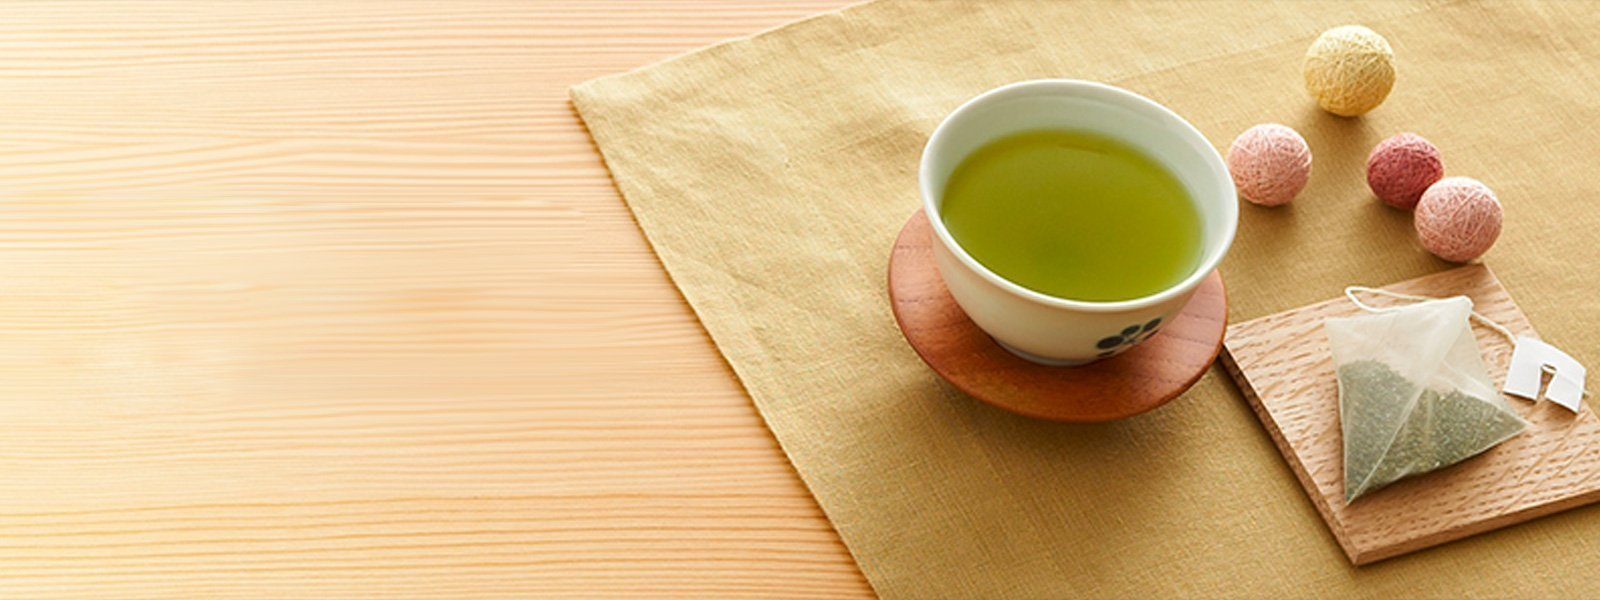 Top 3 Benefits of Japanese Green Tea